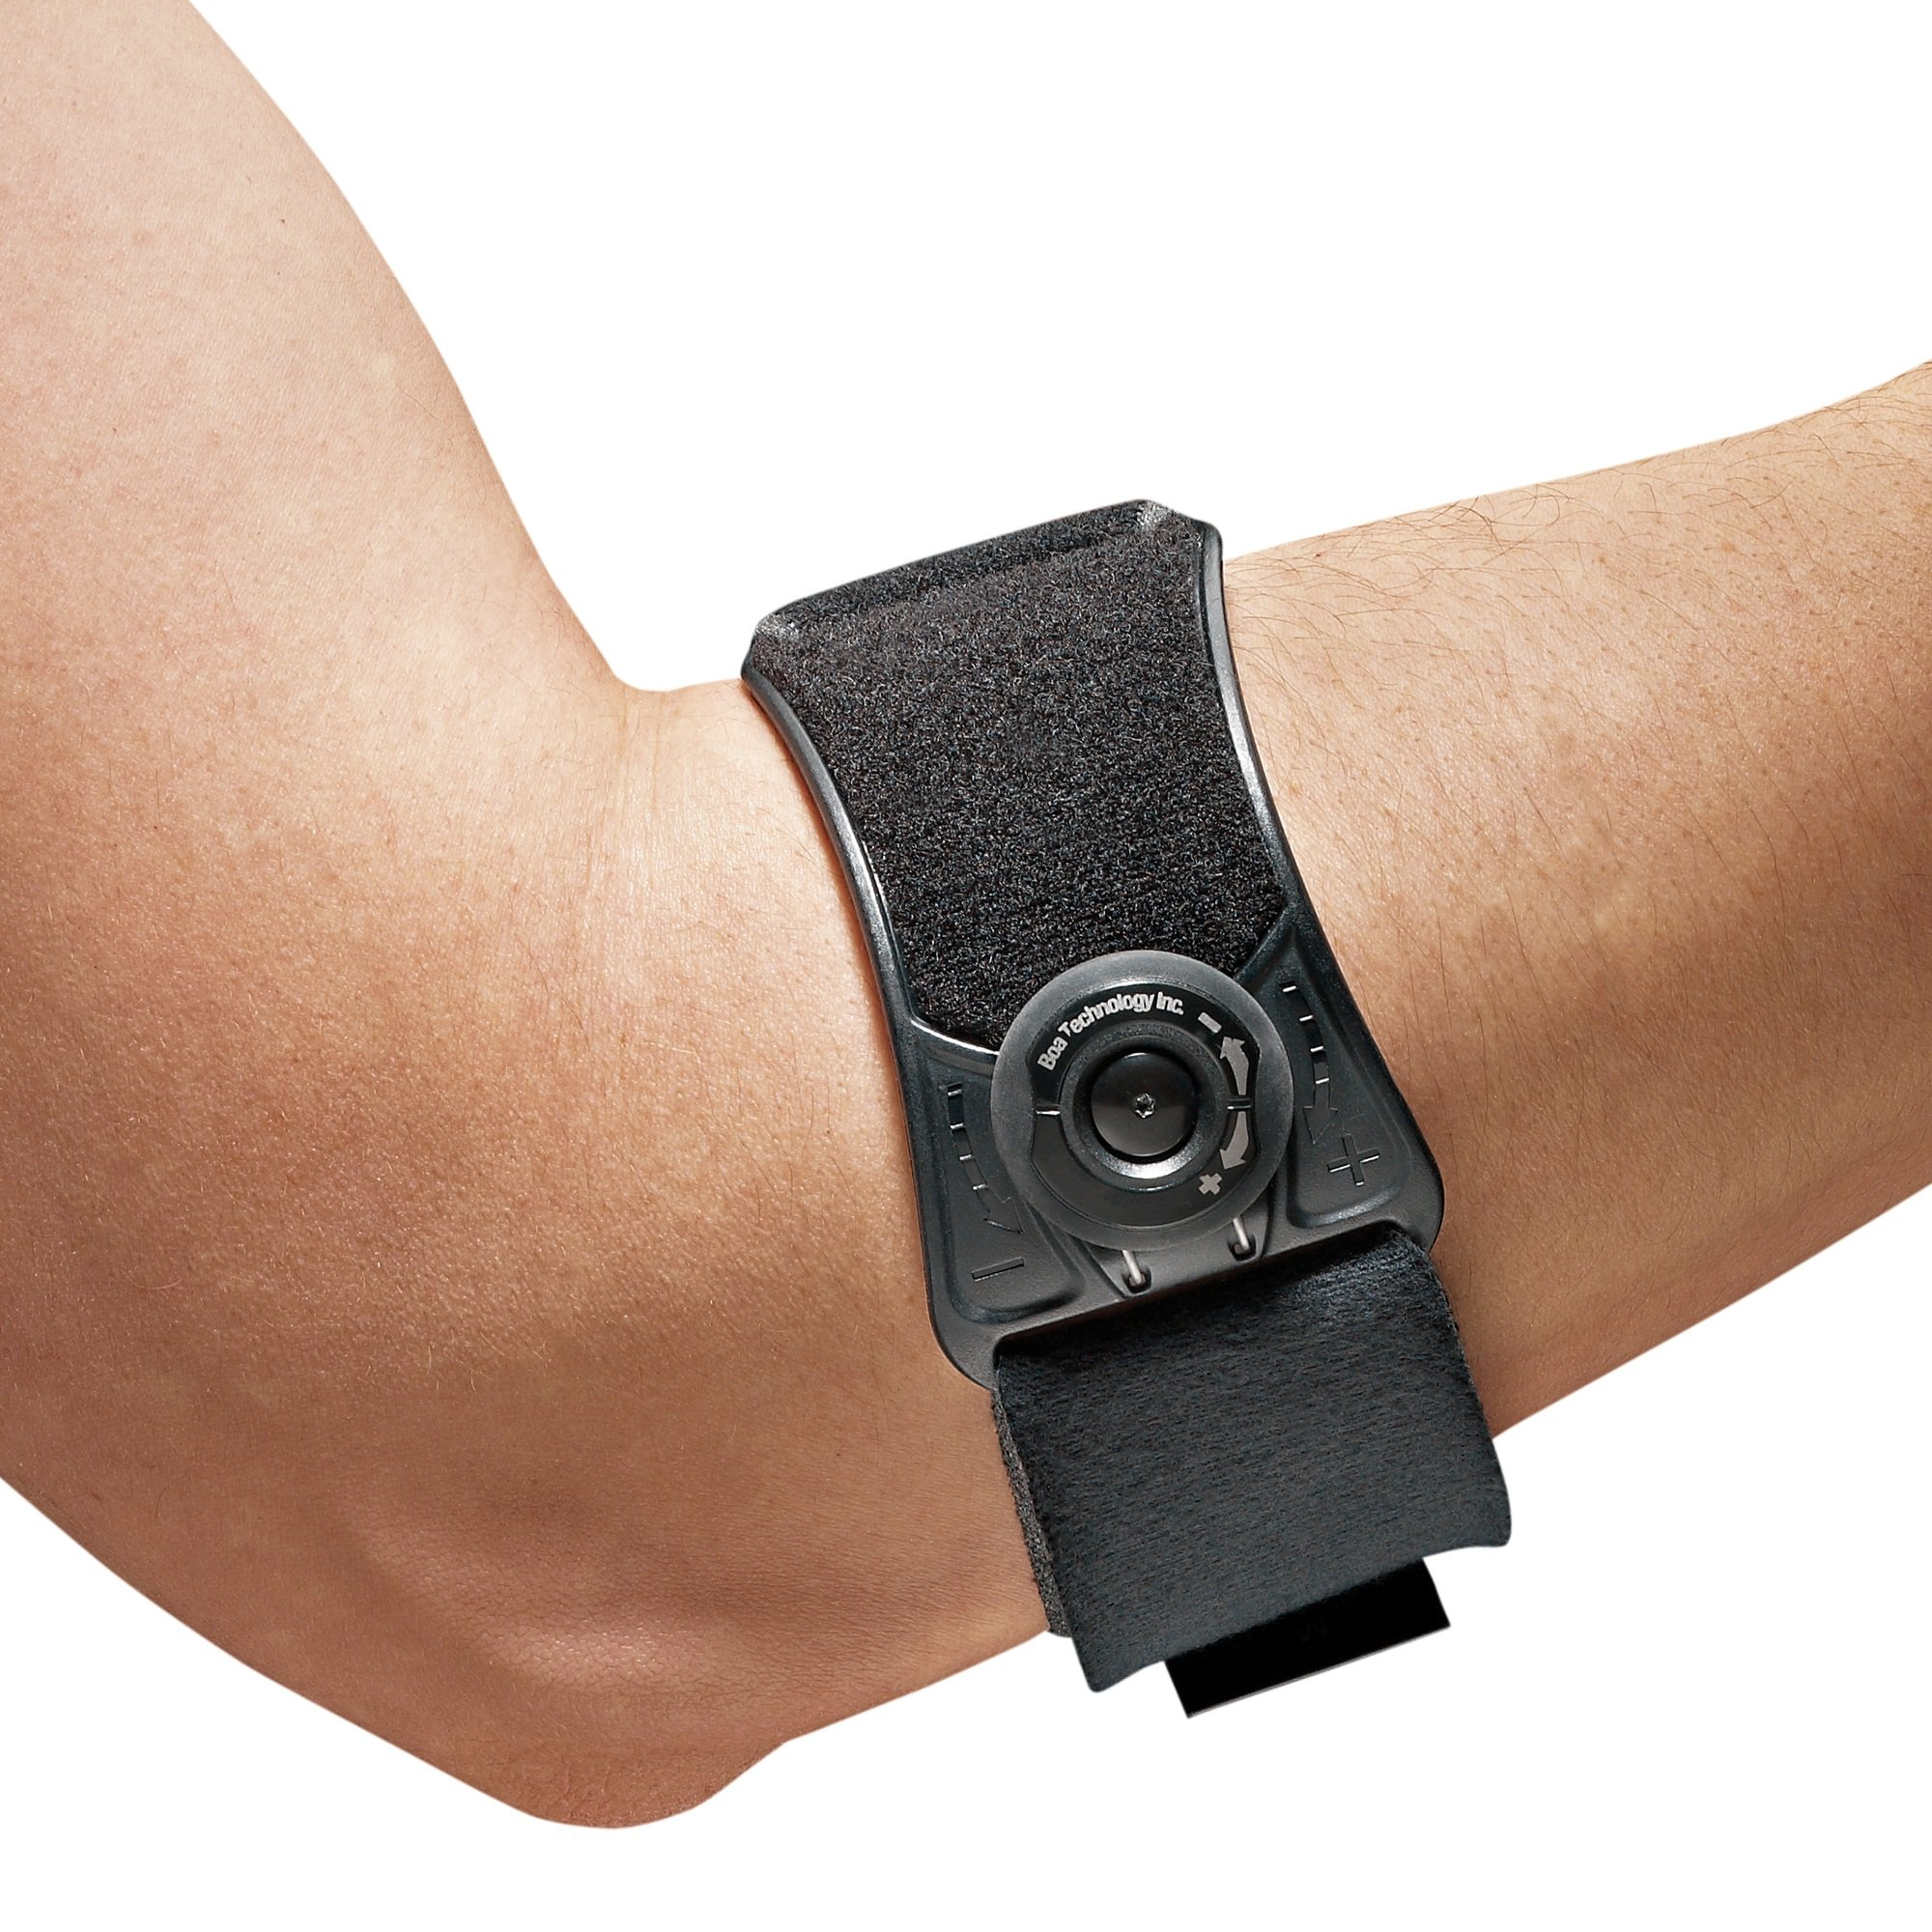 Futuro Sport Custom Dial Tennis Elbow Strap, Adjust to Fit, Firm Stabilizing Support